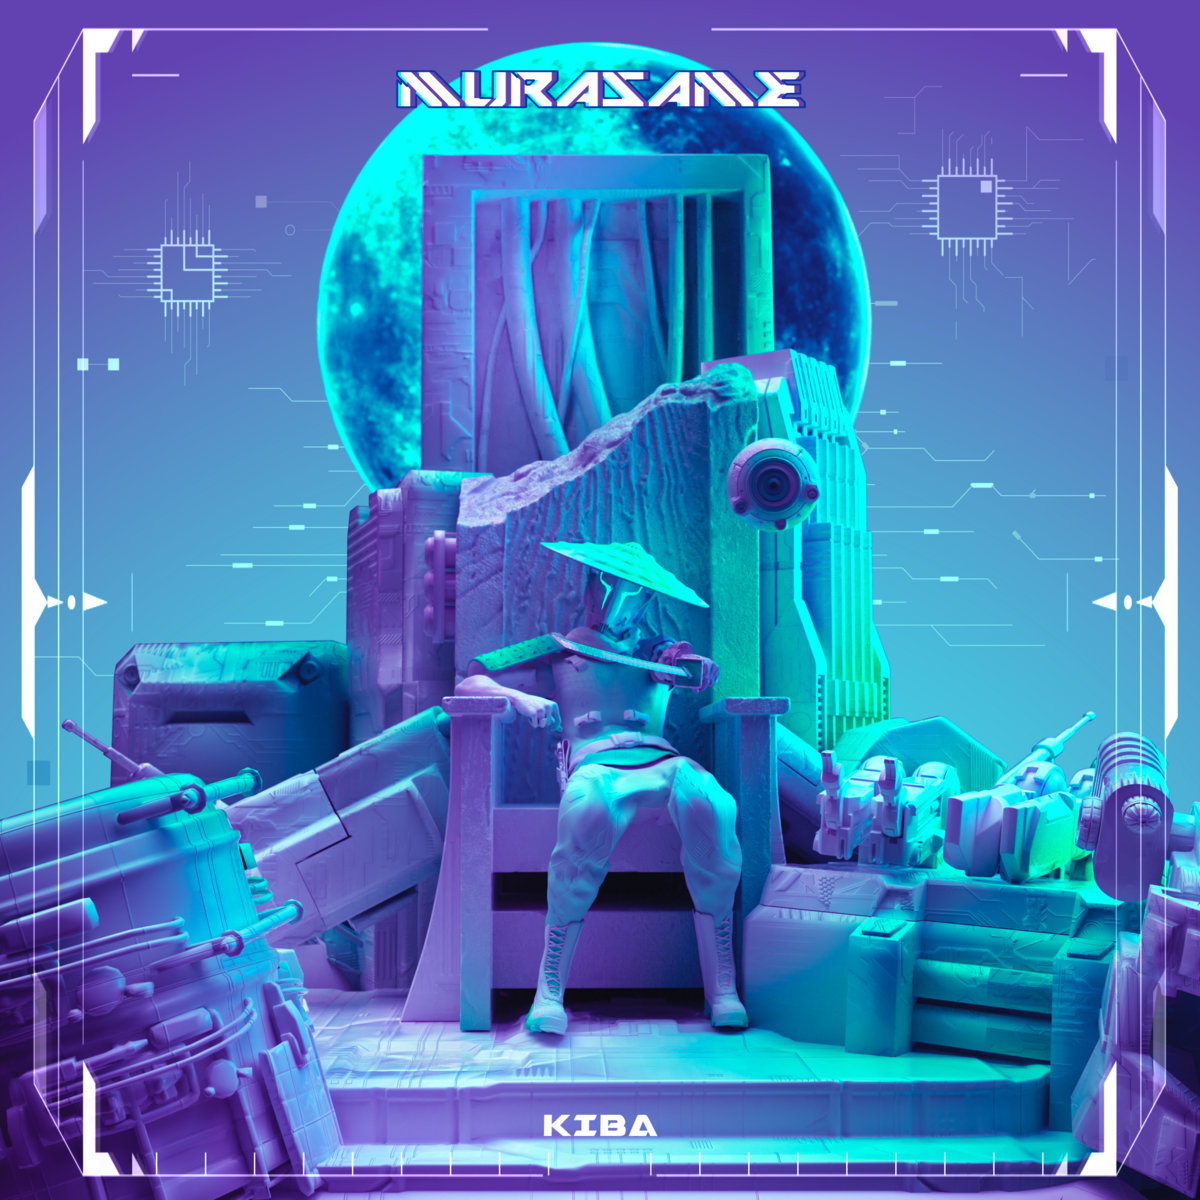 FEATURED LOCAL MUSIC & VIDEO: Murasame by Kiba